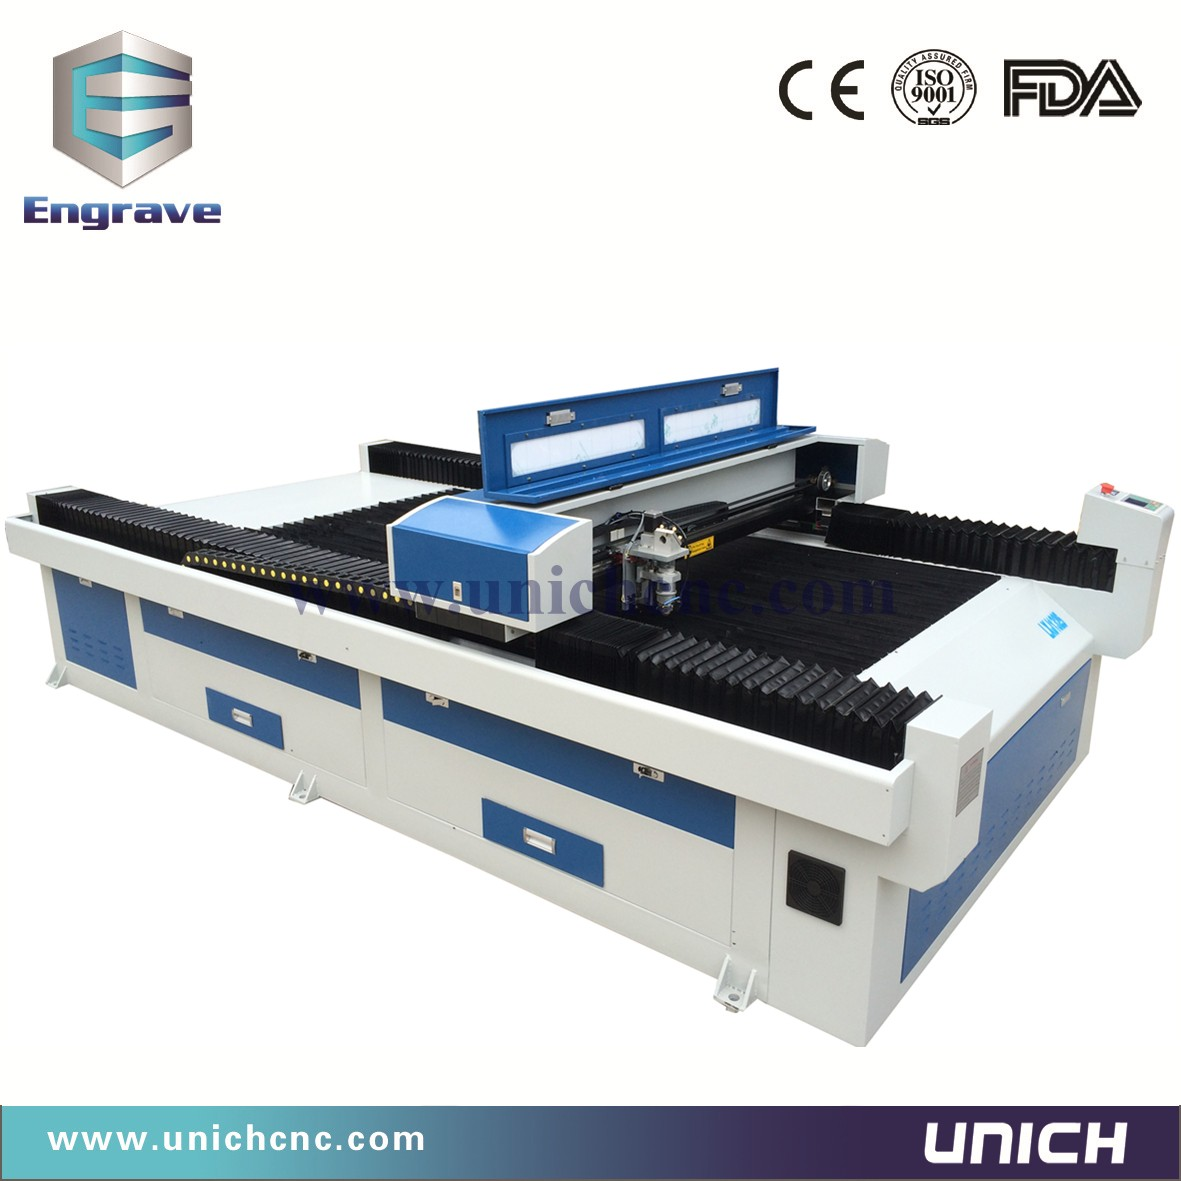 1300x2500mm working area Co2 Laser machine can cutting metal